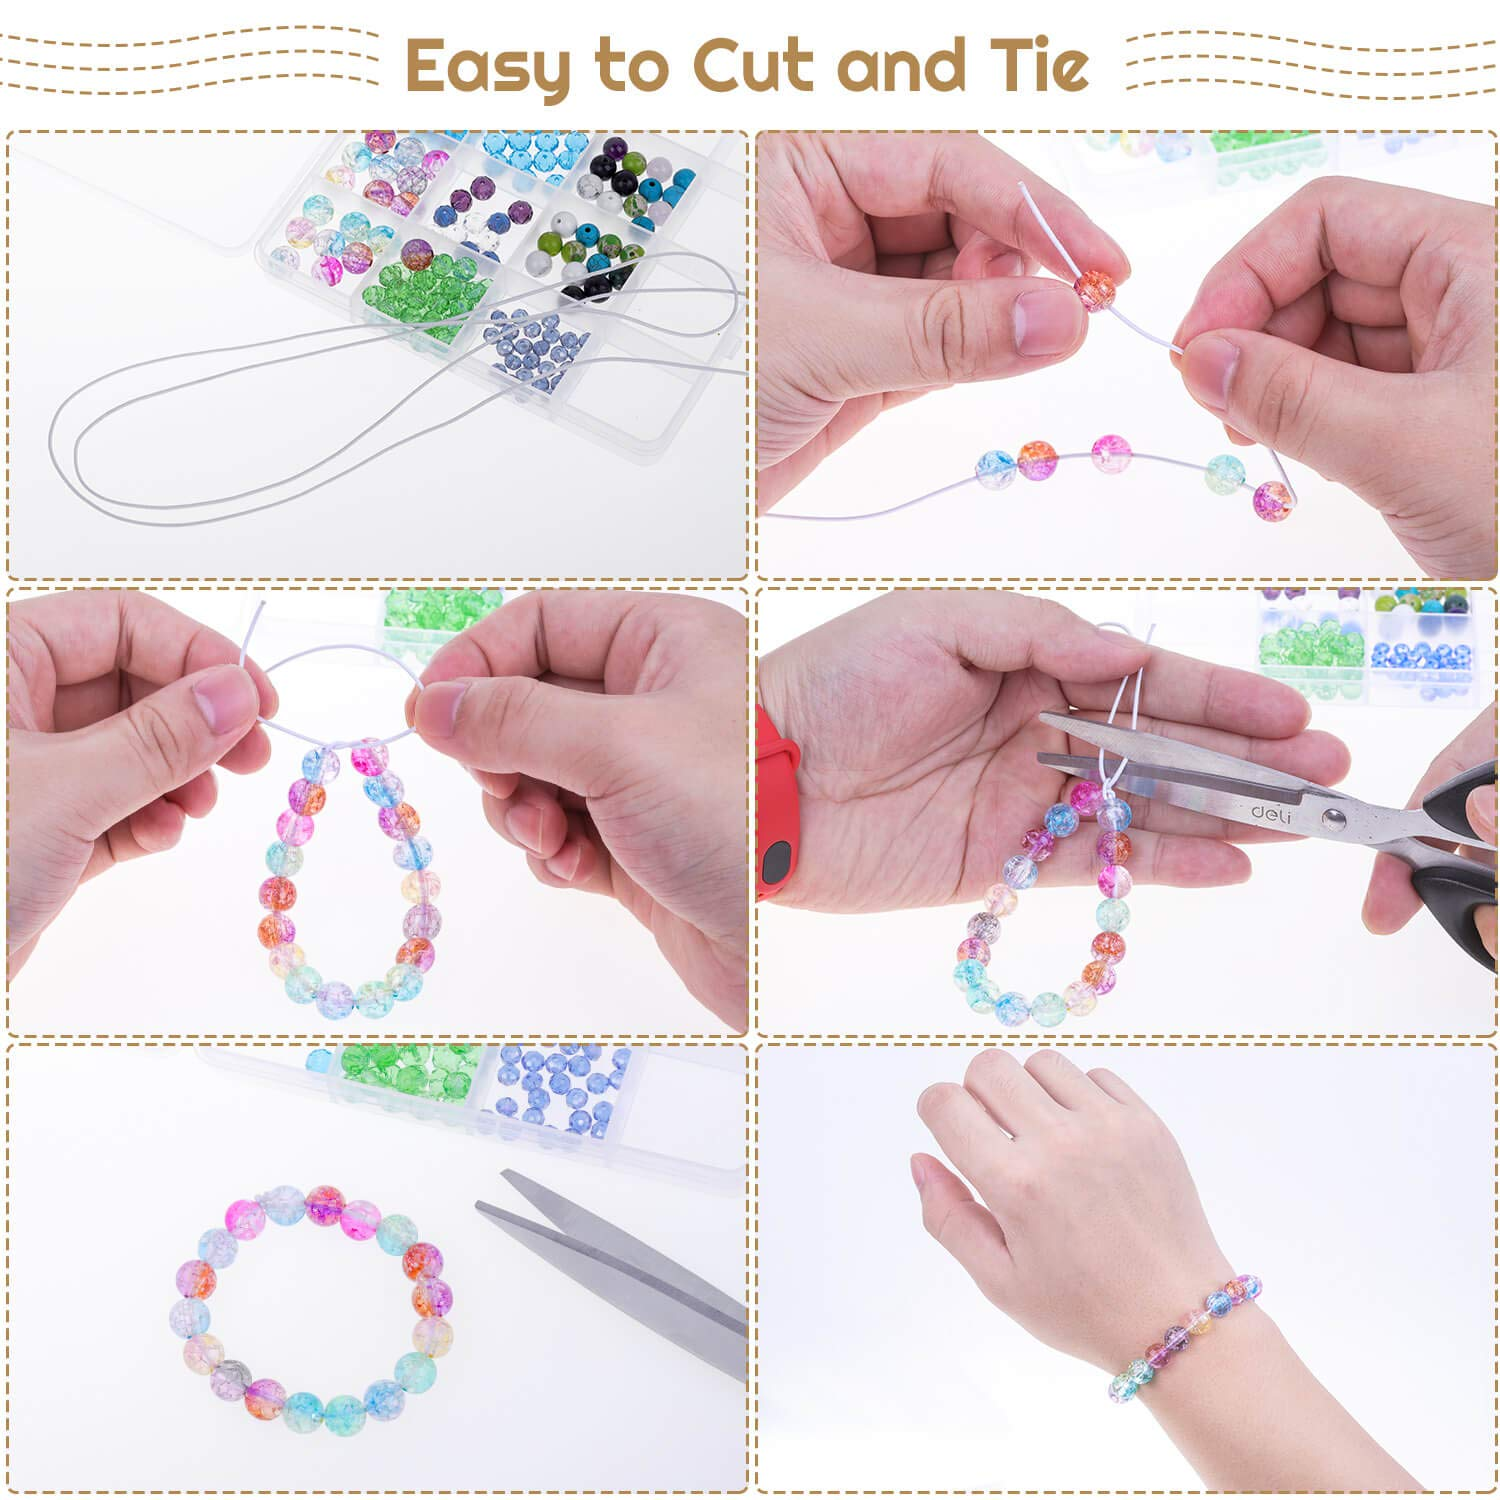 Beading and Sewing Necklace 1.5 MM, 109 Yards, White Elastic String for Bracelets Selizo Elastic Cord Stretchy Bracelet String for Bracelets